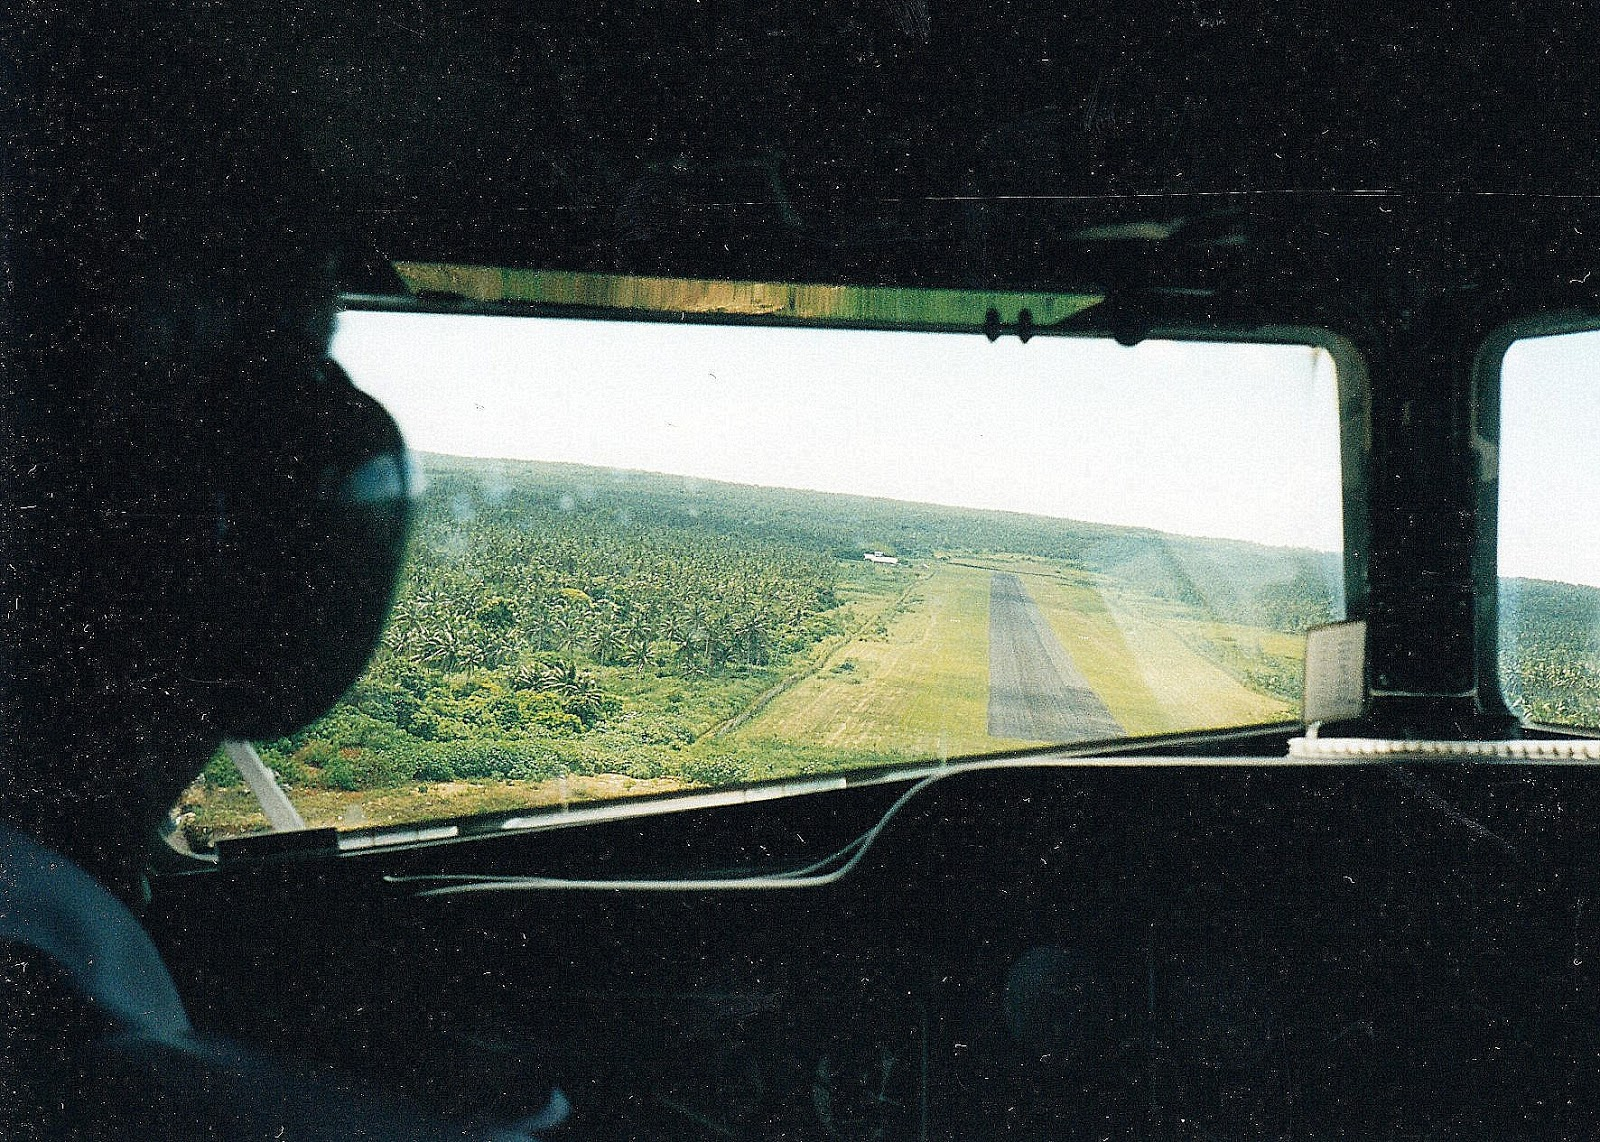 Tonga travel experiences can be very interesting, like this photo taken during landing